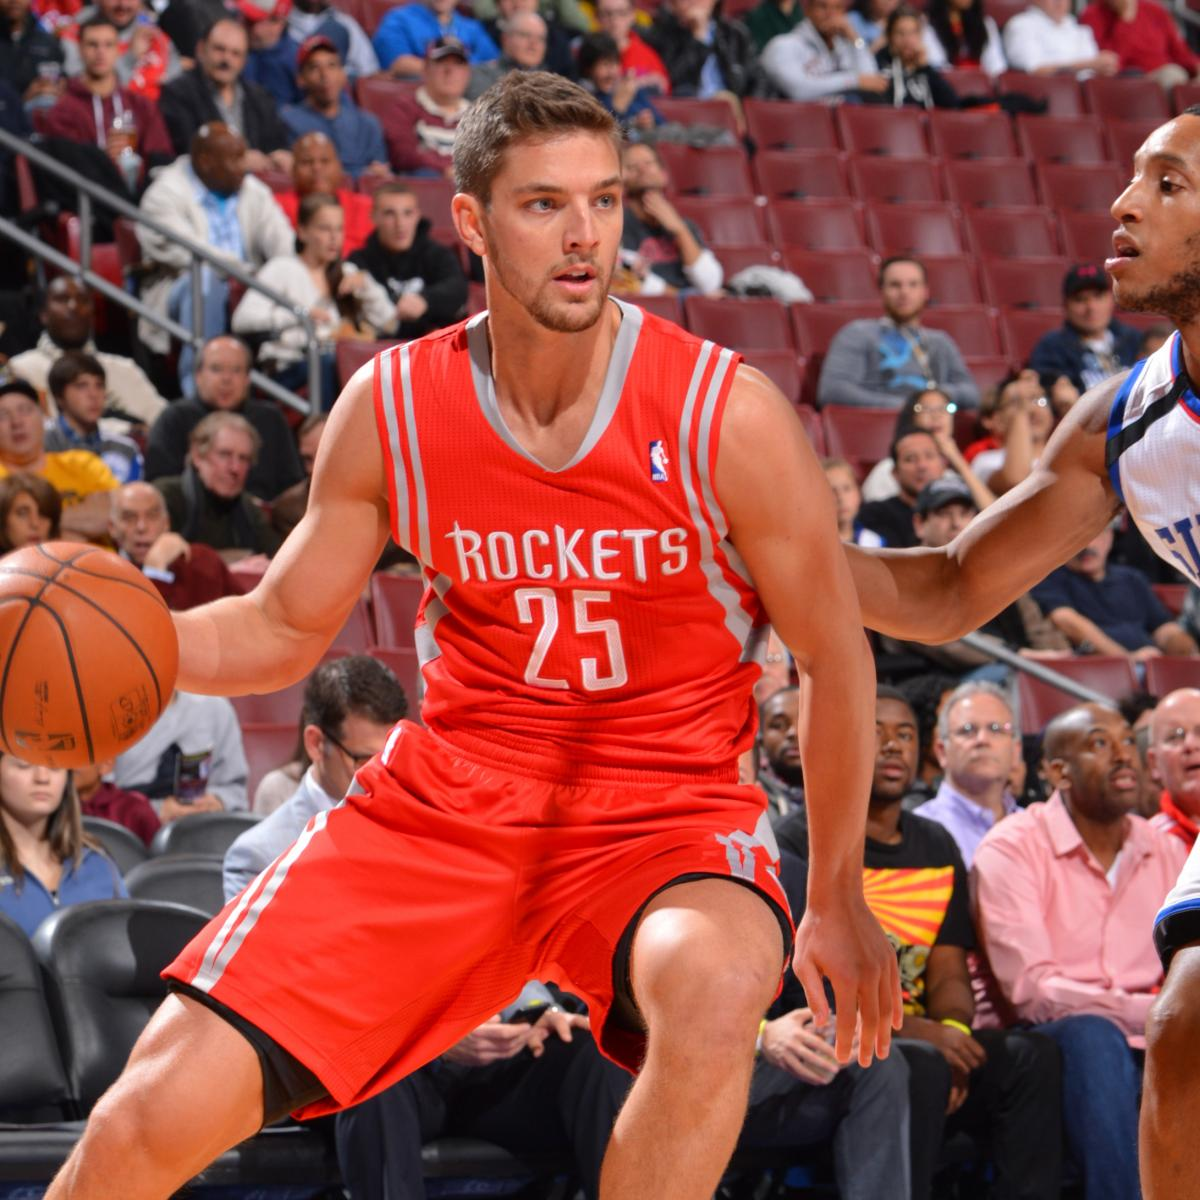 Houston Rockets Championship Roster: Is Chandler Parsons No Longer Underrated For Houston